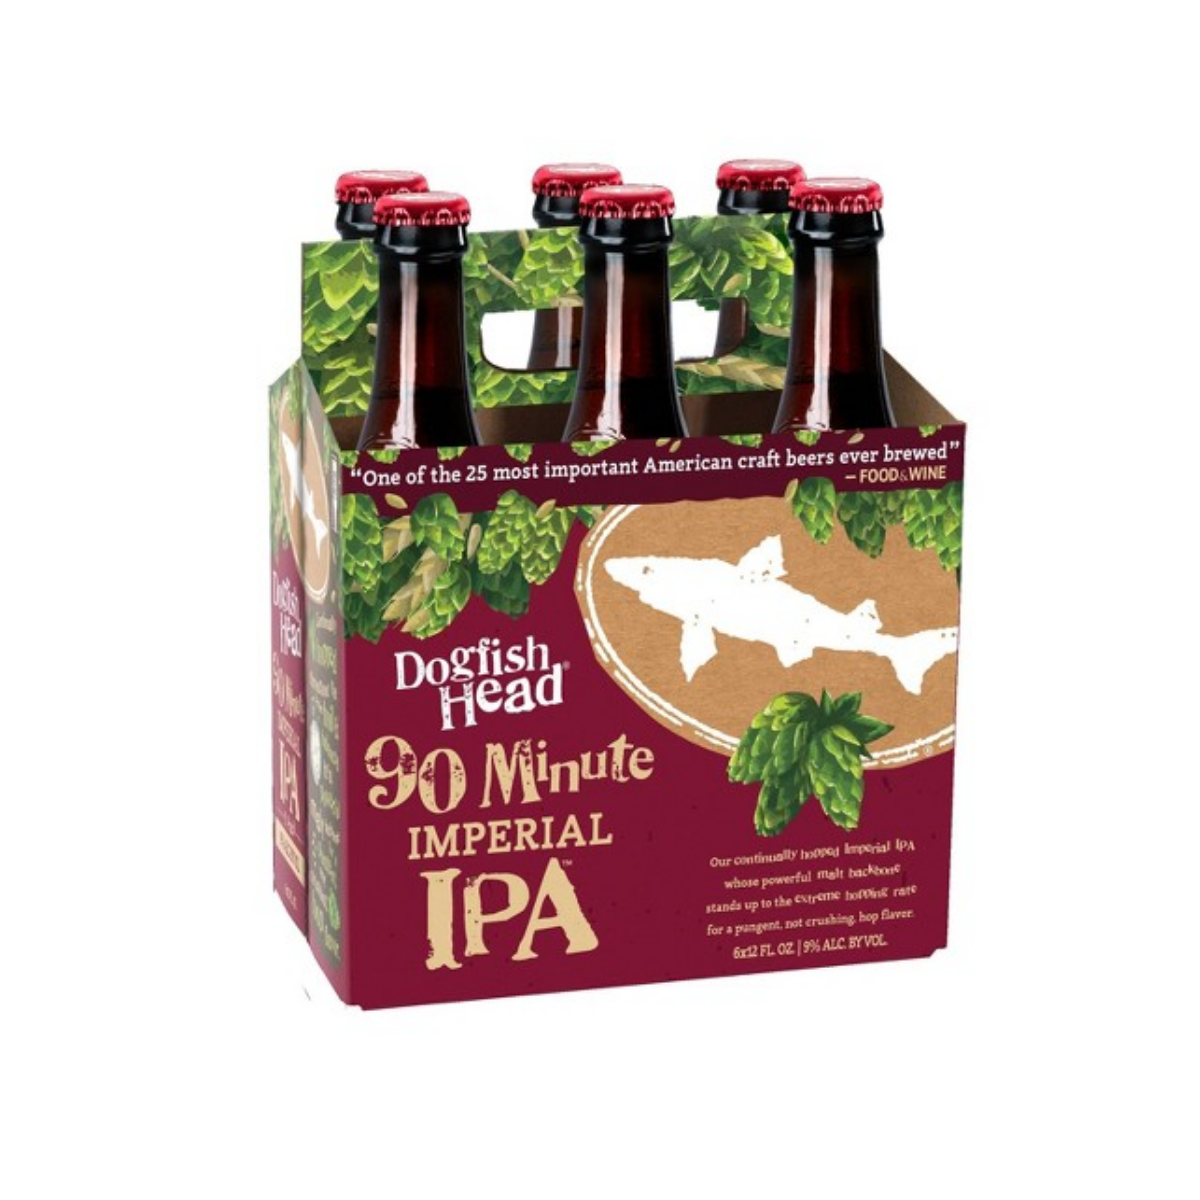 DogFish Head 90 Minute IPA 6PK Bottles